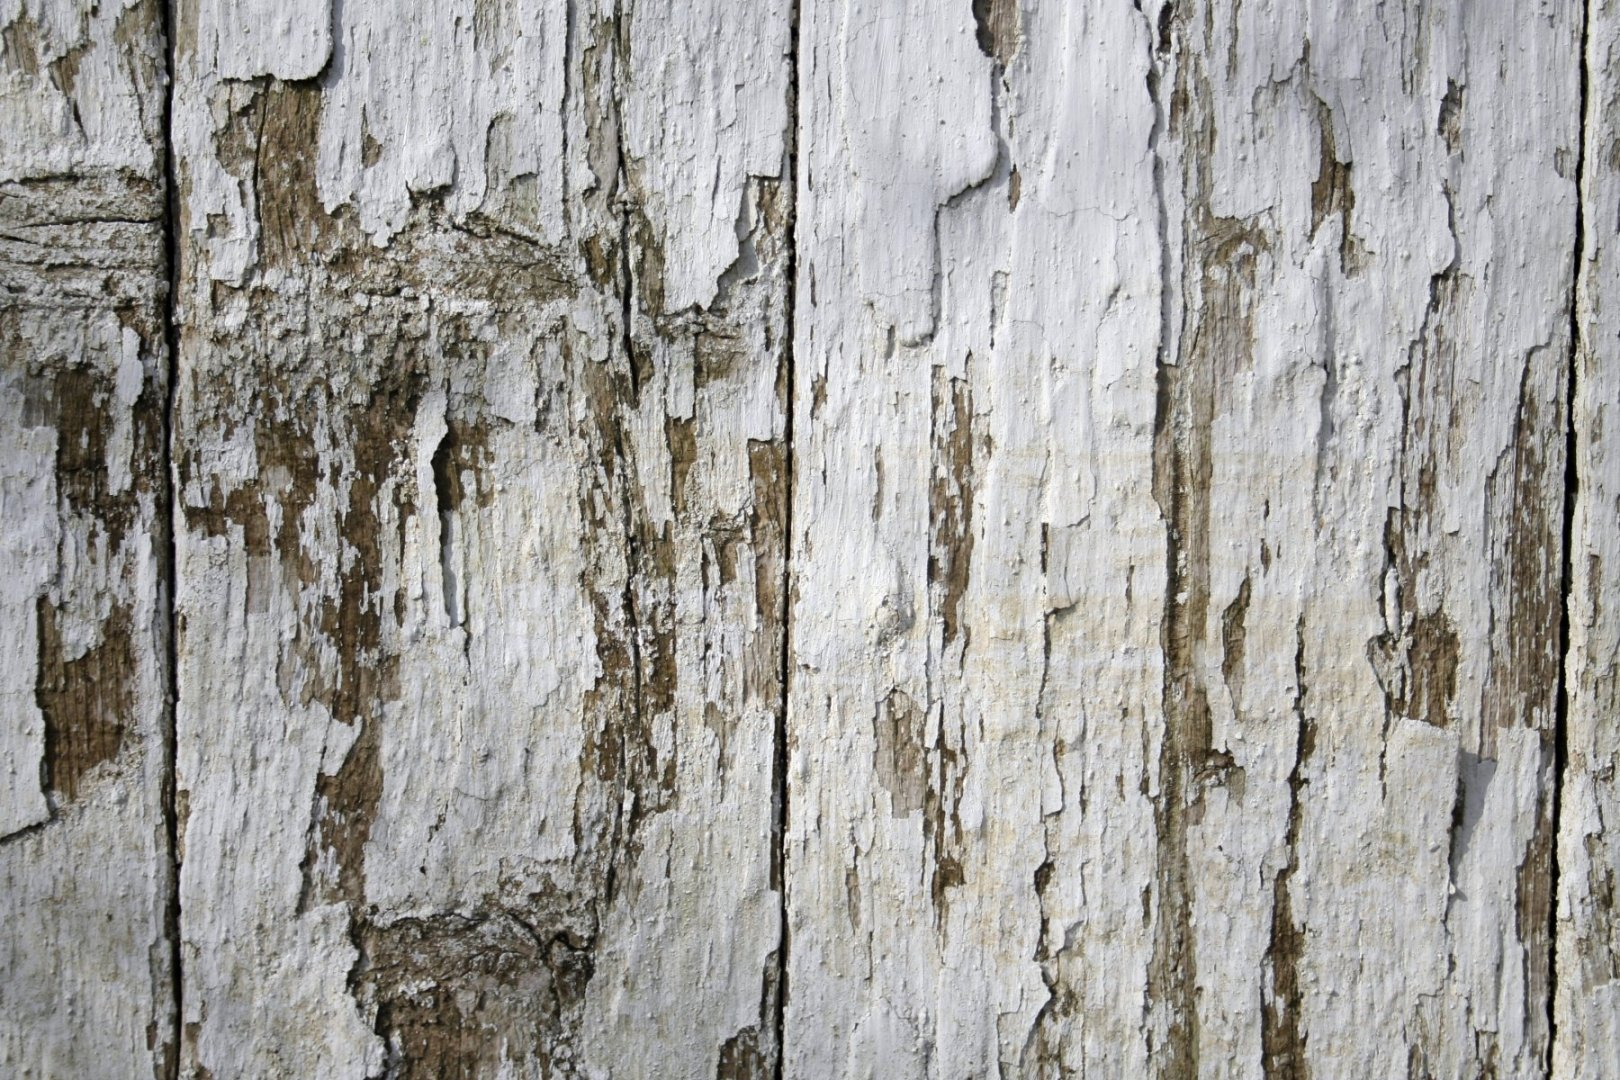 white-wood-texture-fence-texturepalace